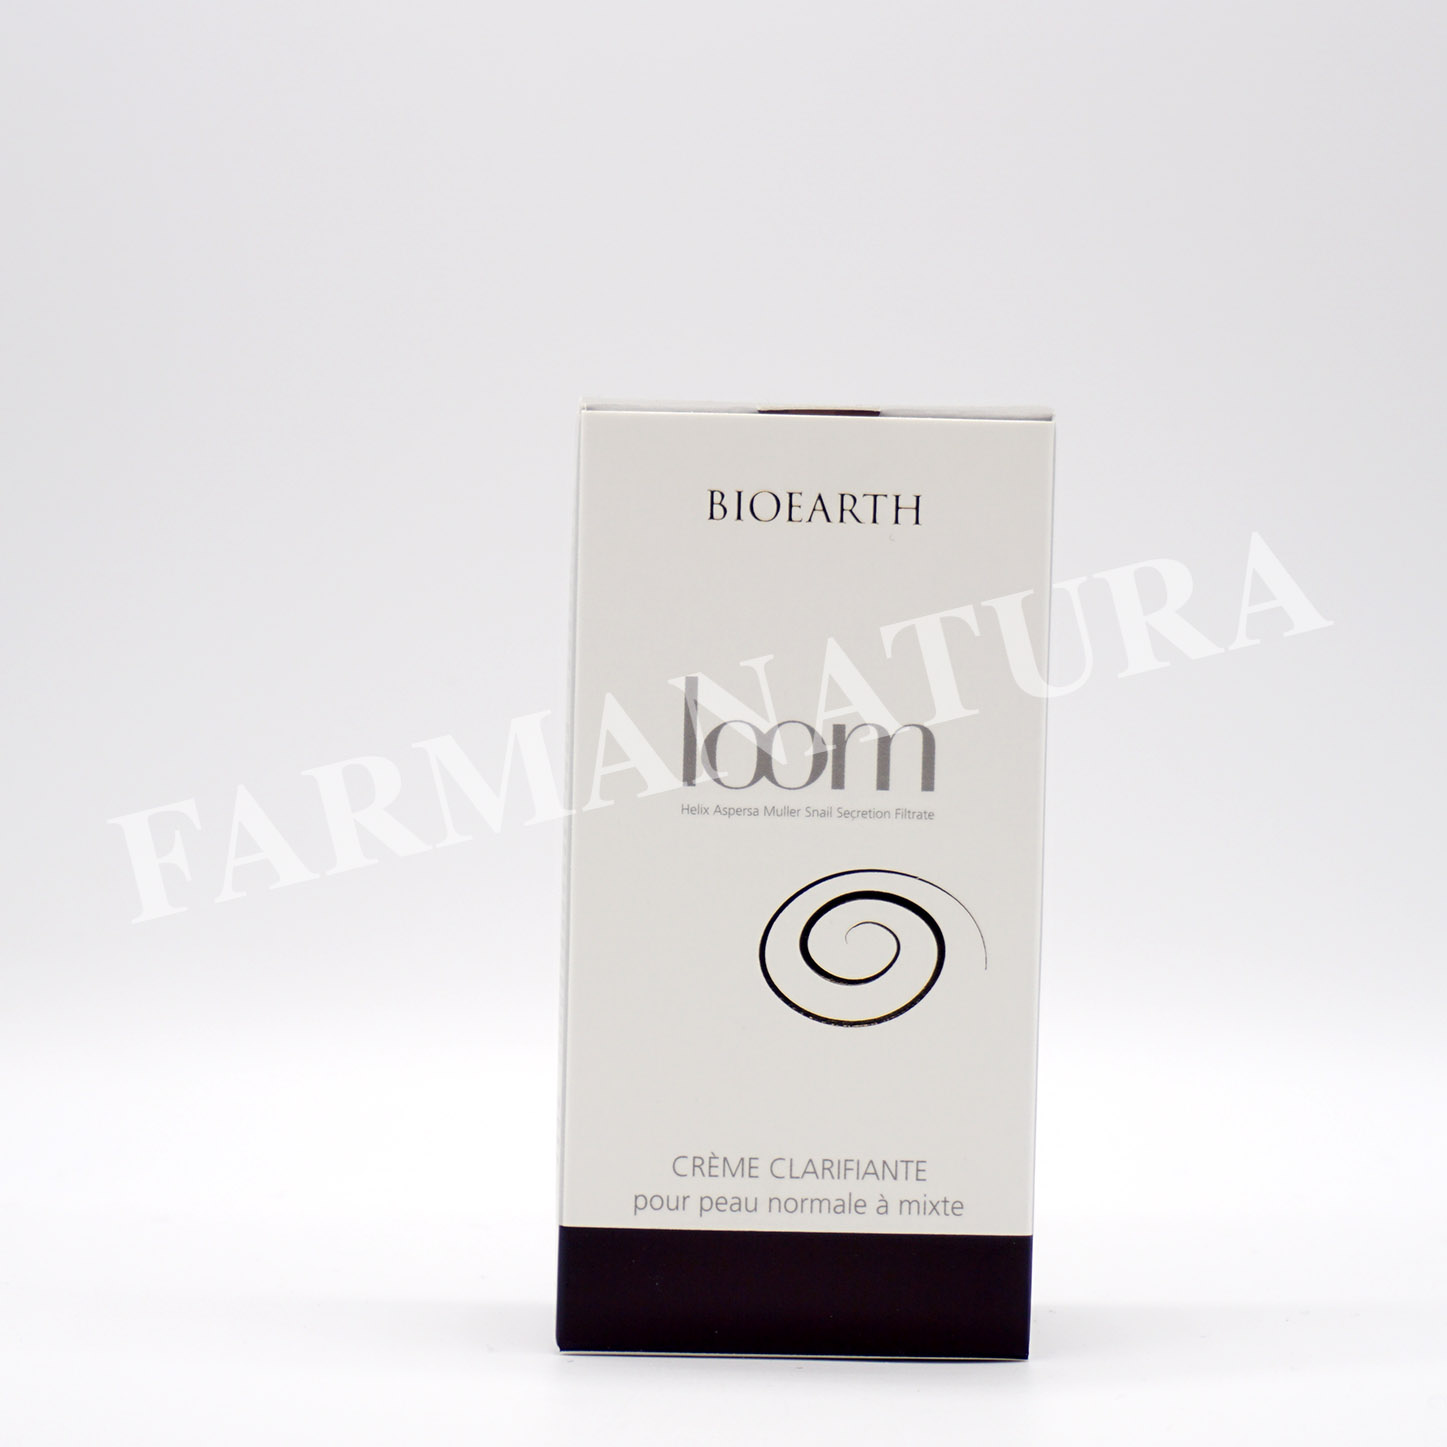 Loom Creme Clarifiante 30 Ml Bioearth